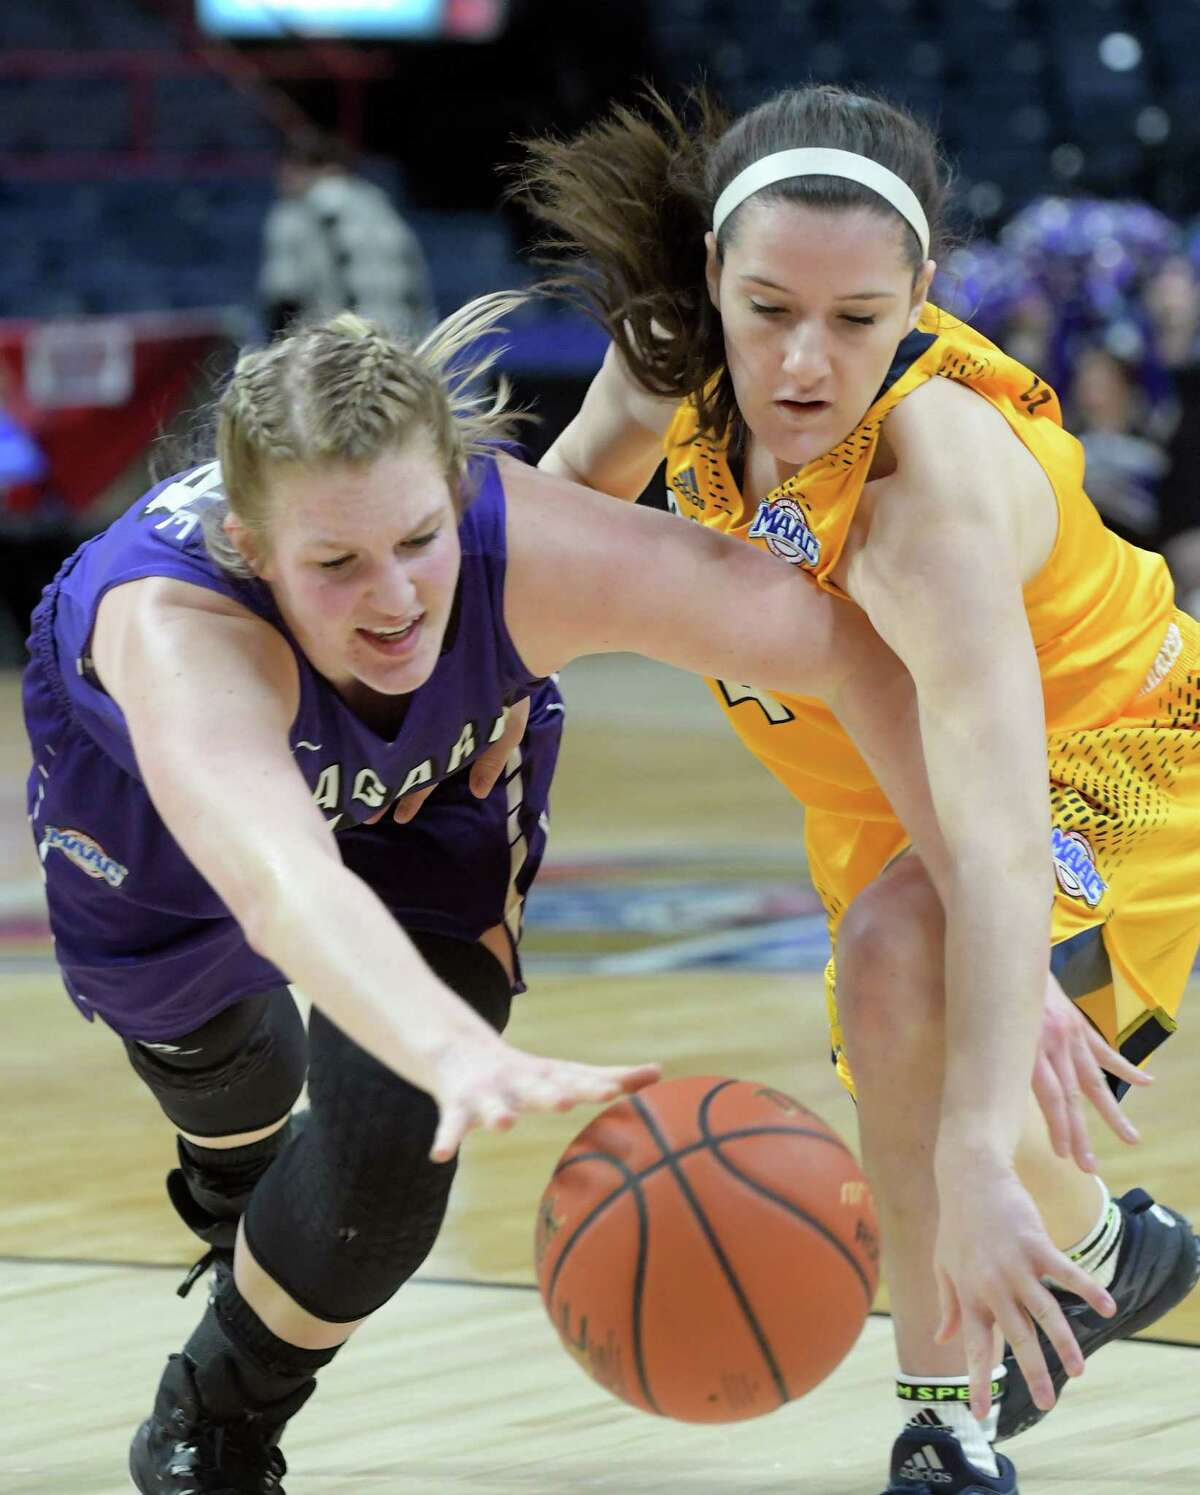 Kaylee Stroemple of Niagara, left, and Anna Sweny of Canisius battle for a loose ball during their MAAC Basketball Tournament game at the Times Union Center on Thursday, March 2, 2017, in Albany, N.Y. (Paul Buckowski / Times Union)